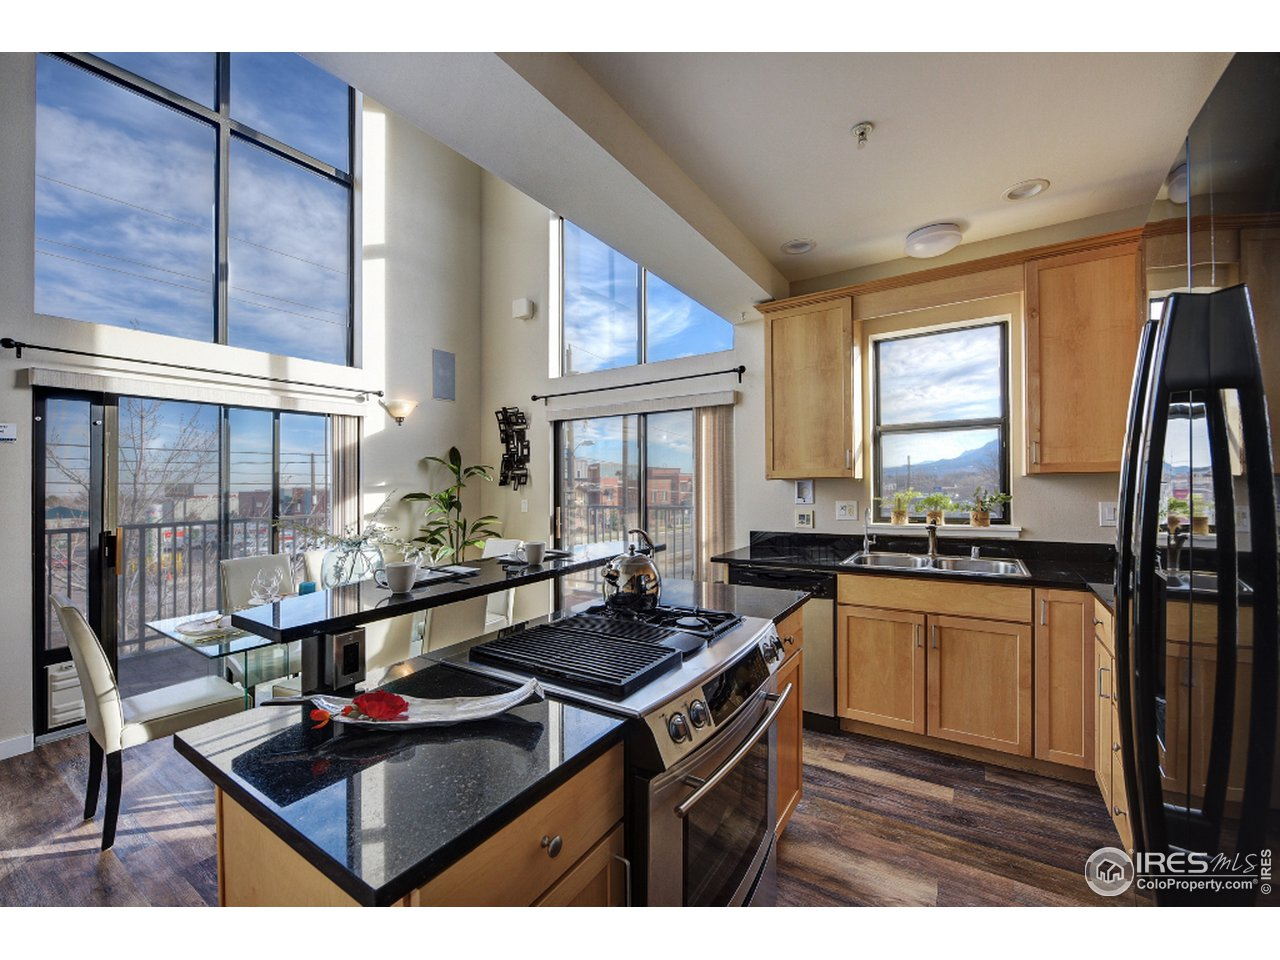 Sunny and bright kitchen